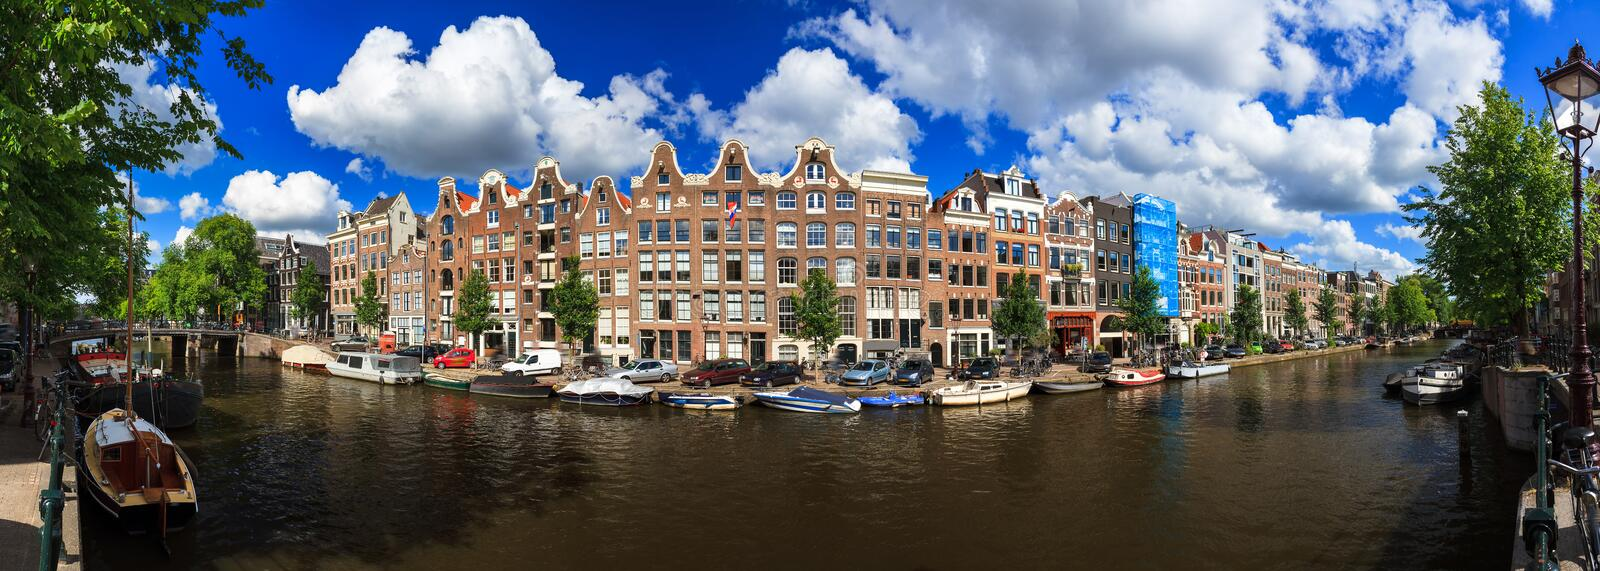 180 Prinsengracht. Beautiful 180 degree panoramic panorama of the UNESCO world heritage Prinsengracht canal in Amsterdam, the Netherlands, on a sunny summer day stock image